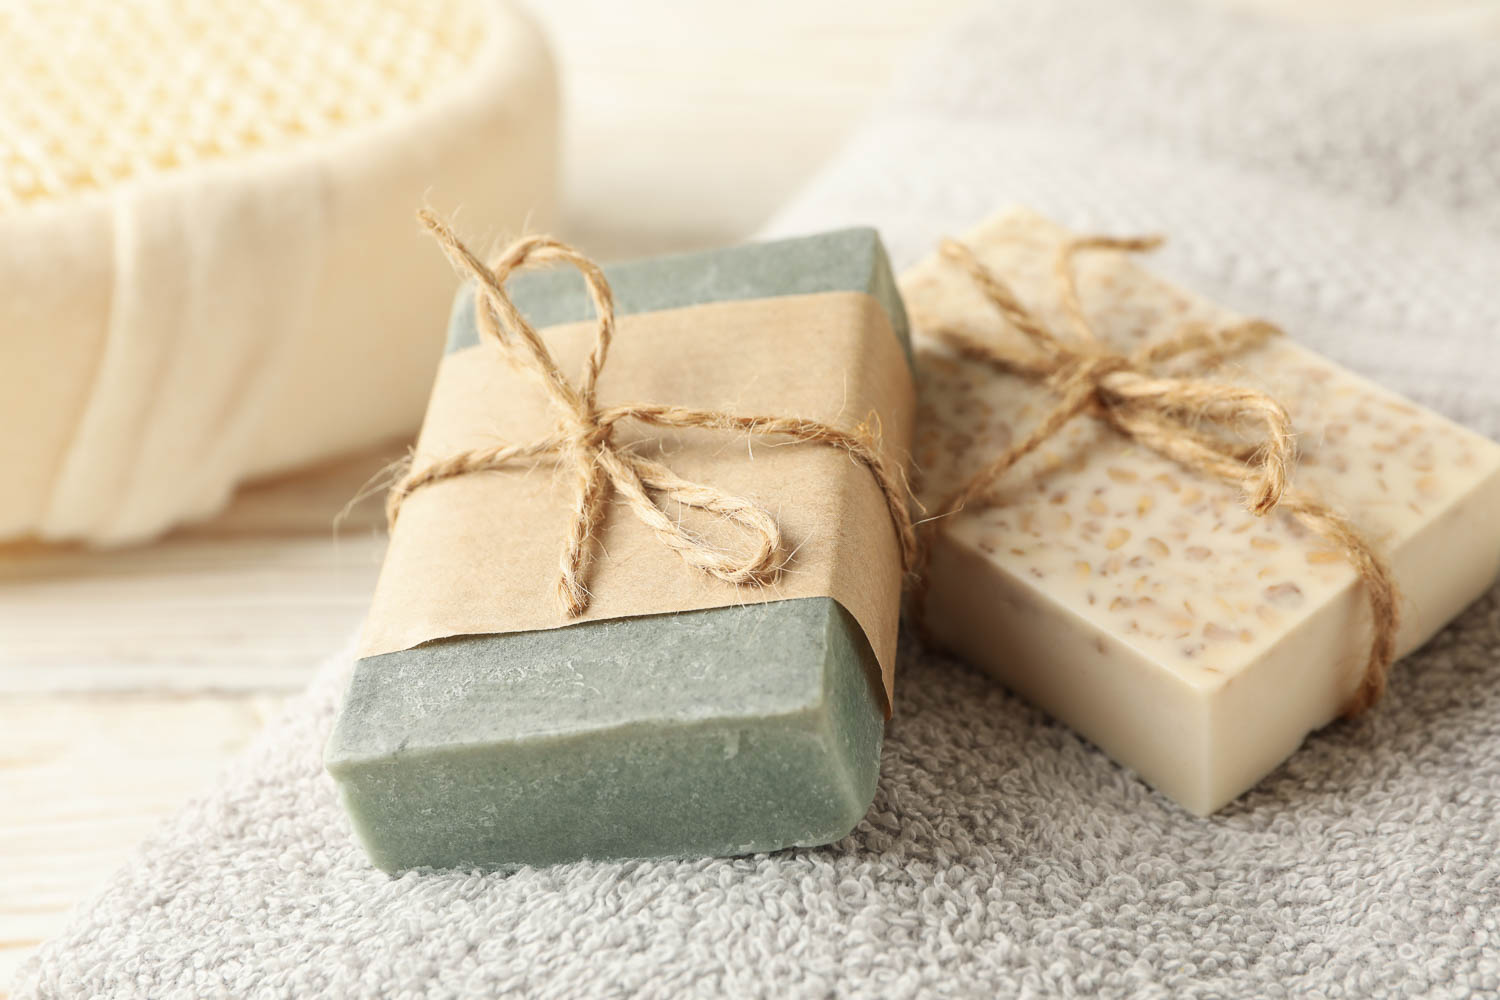 Towel and natural soap on wooden background